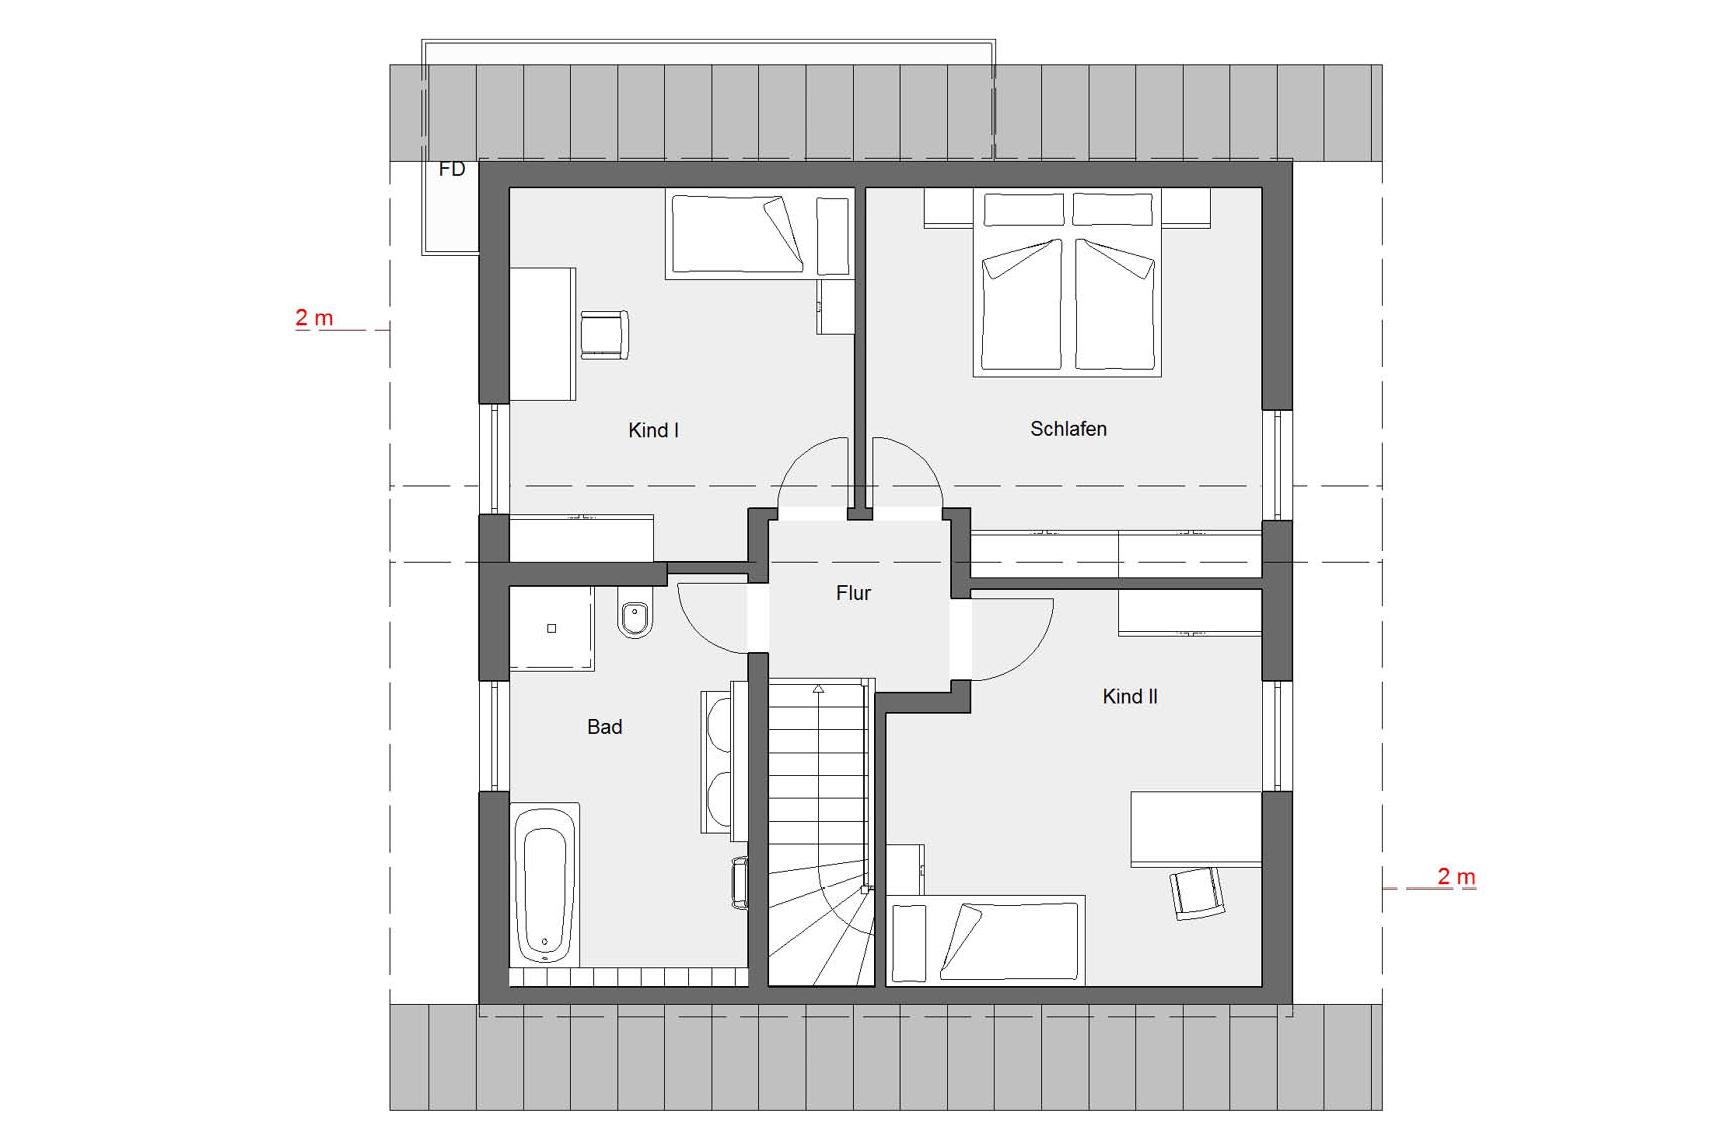 Attic floorplan E 15-128.3 Houses with offset pent roof